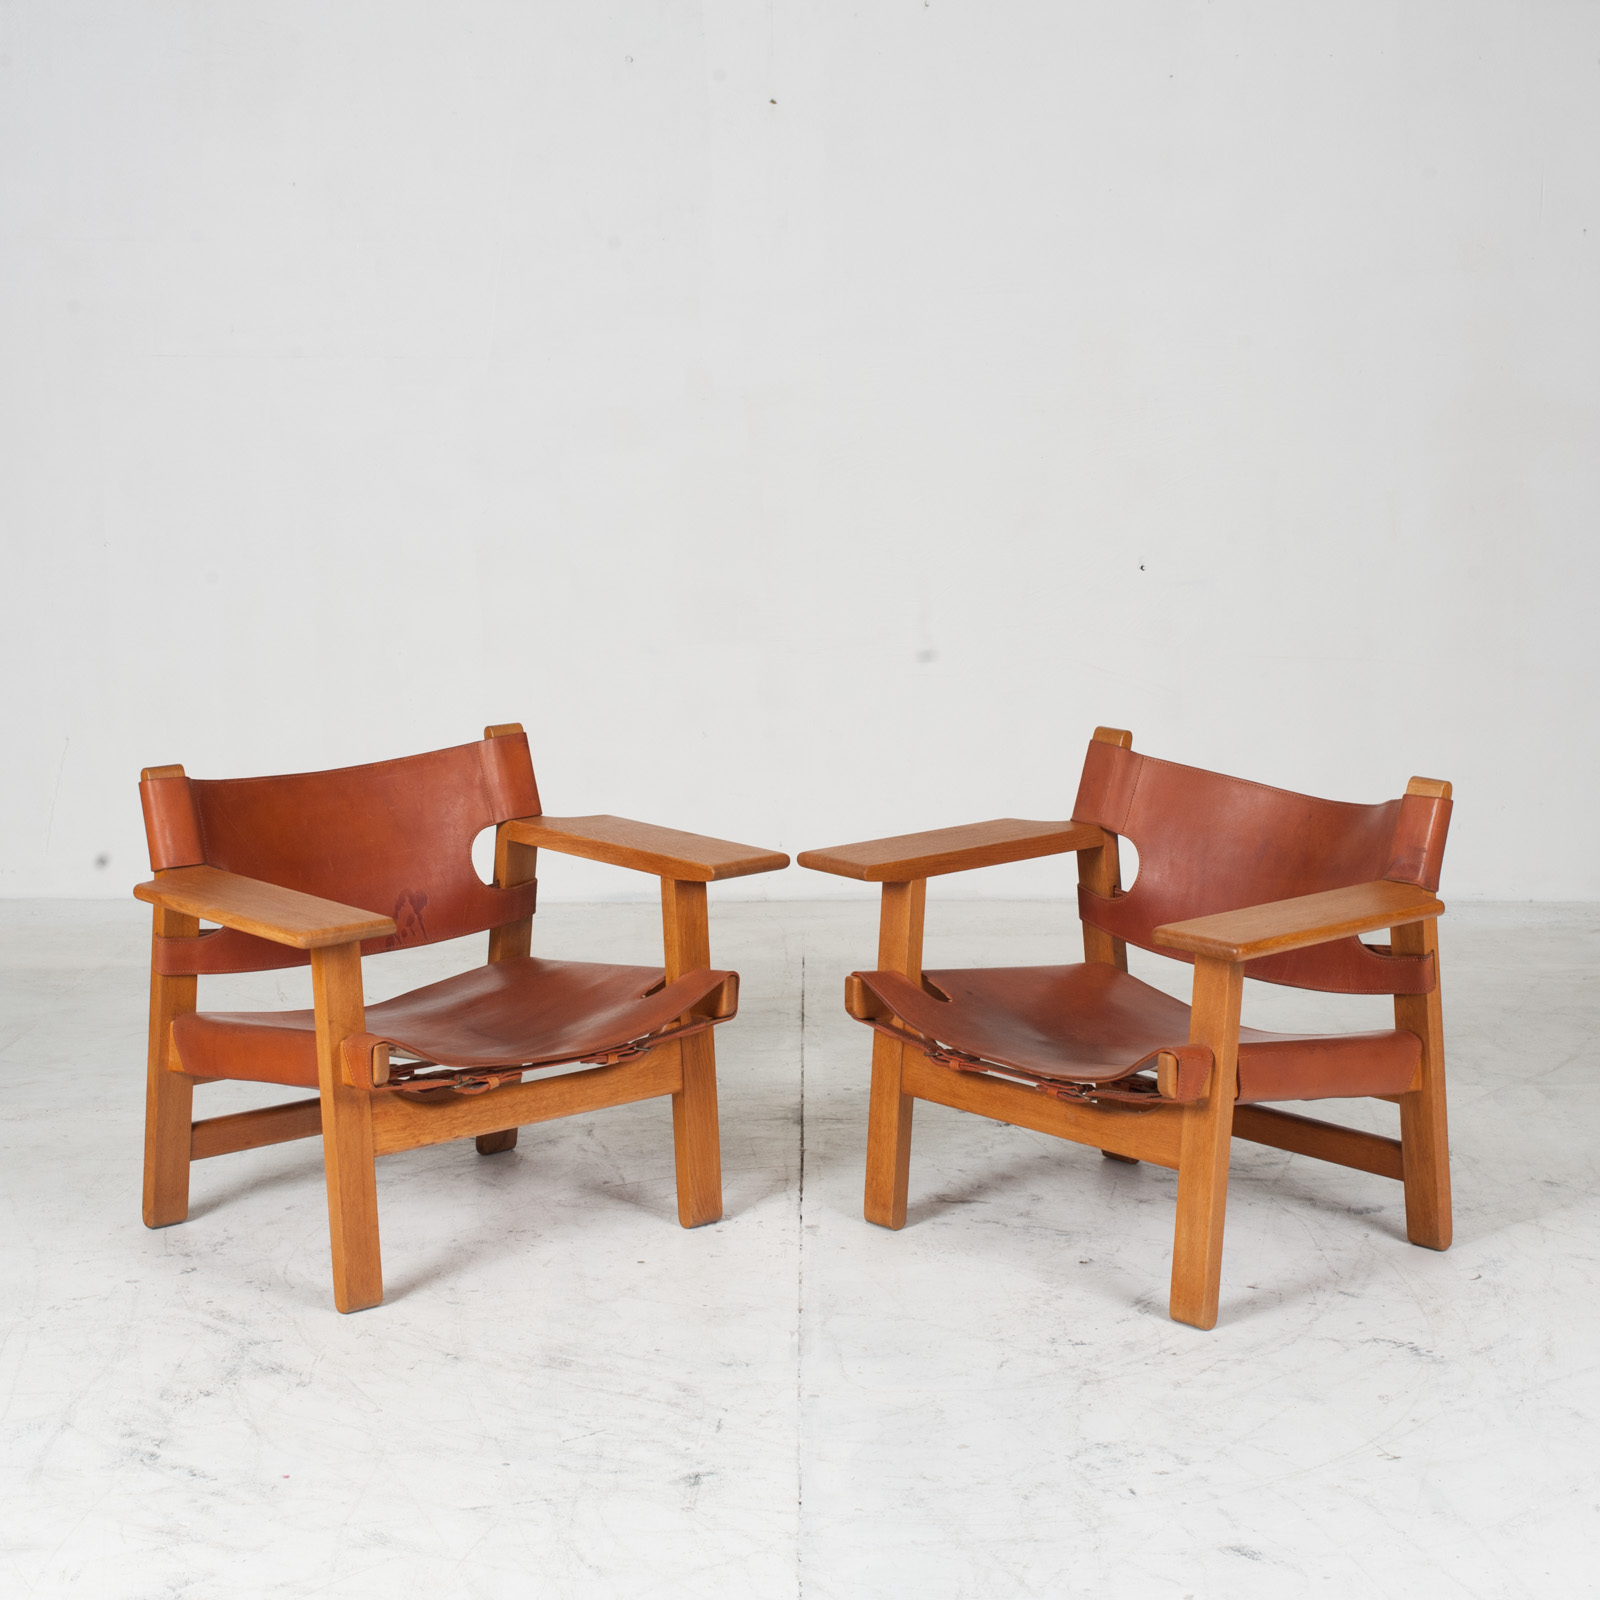 Model 2226 Armchair By Borge Mogensen For Fredericia In Tan Leather 1950s Denmark 11